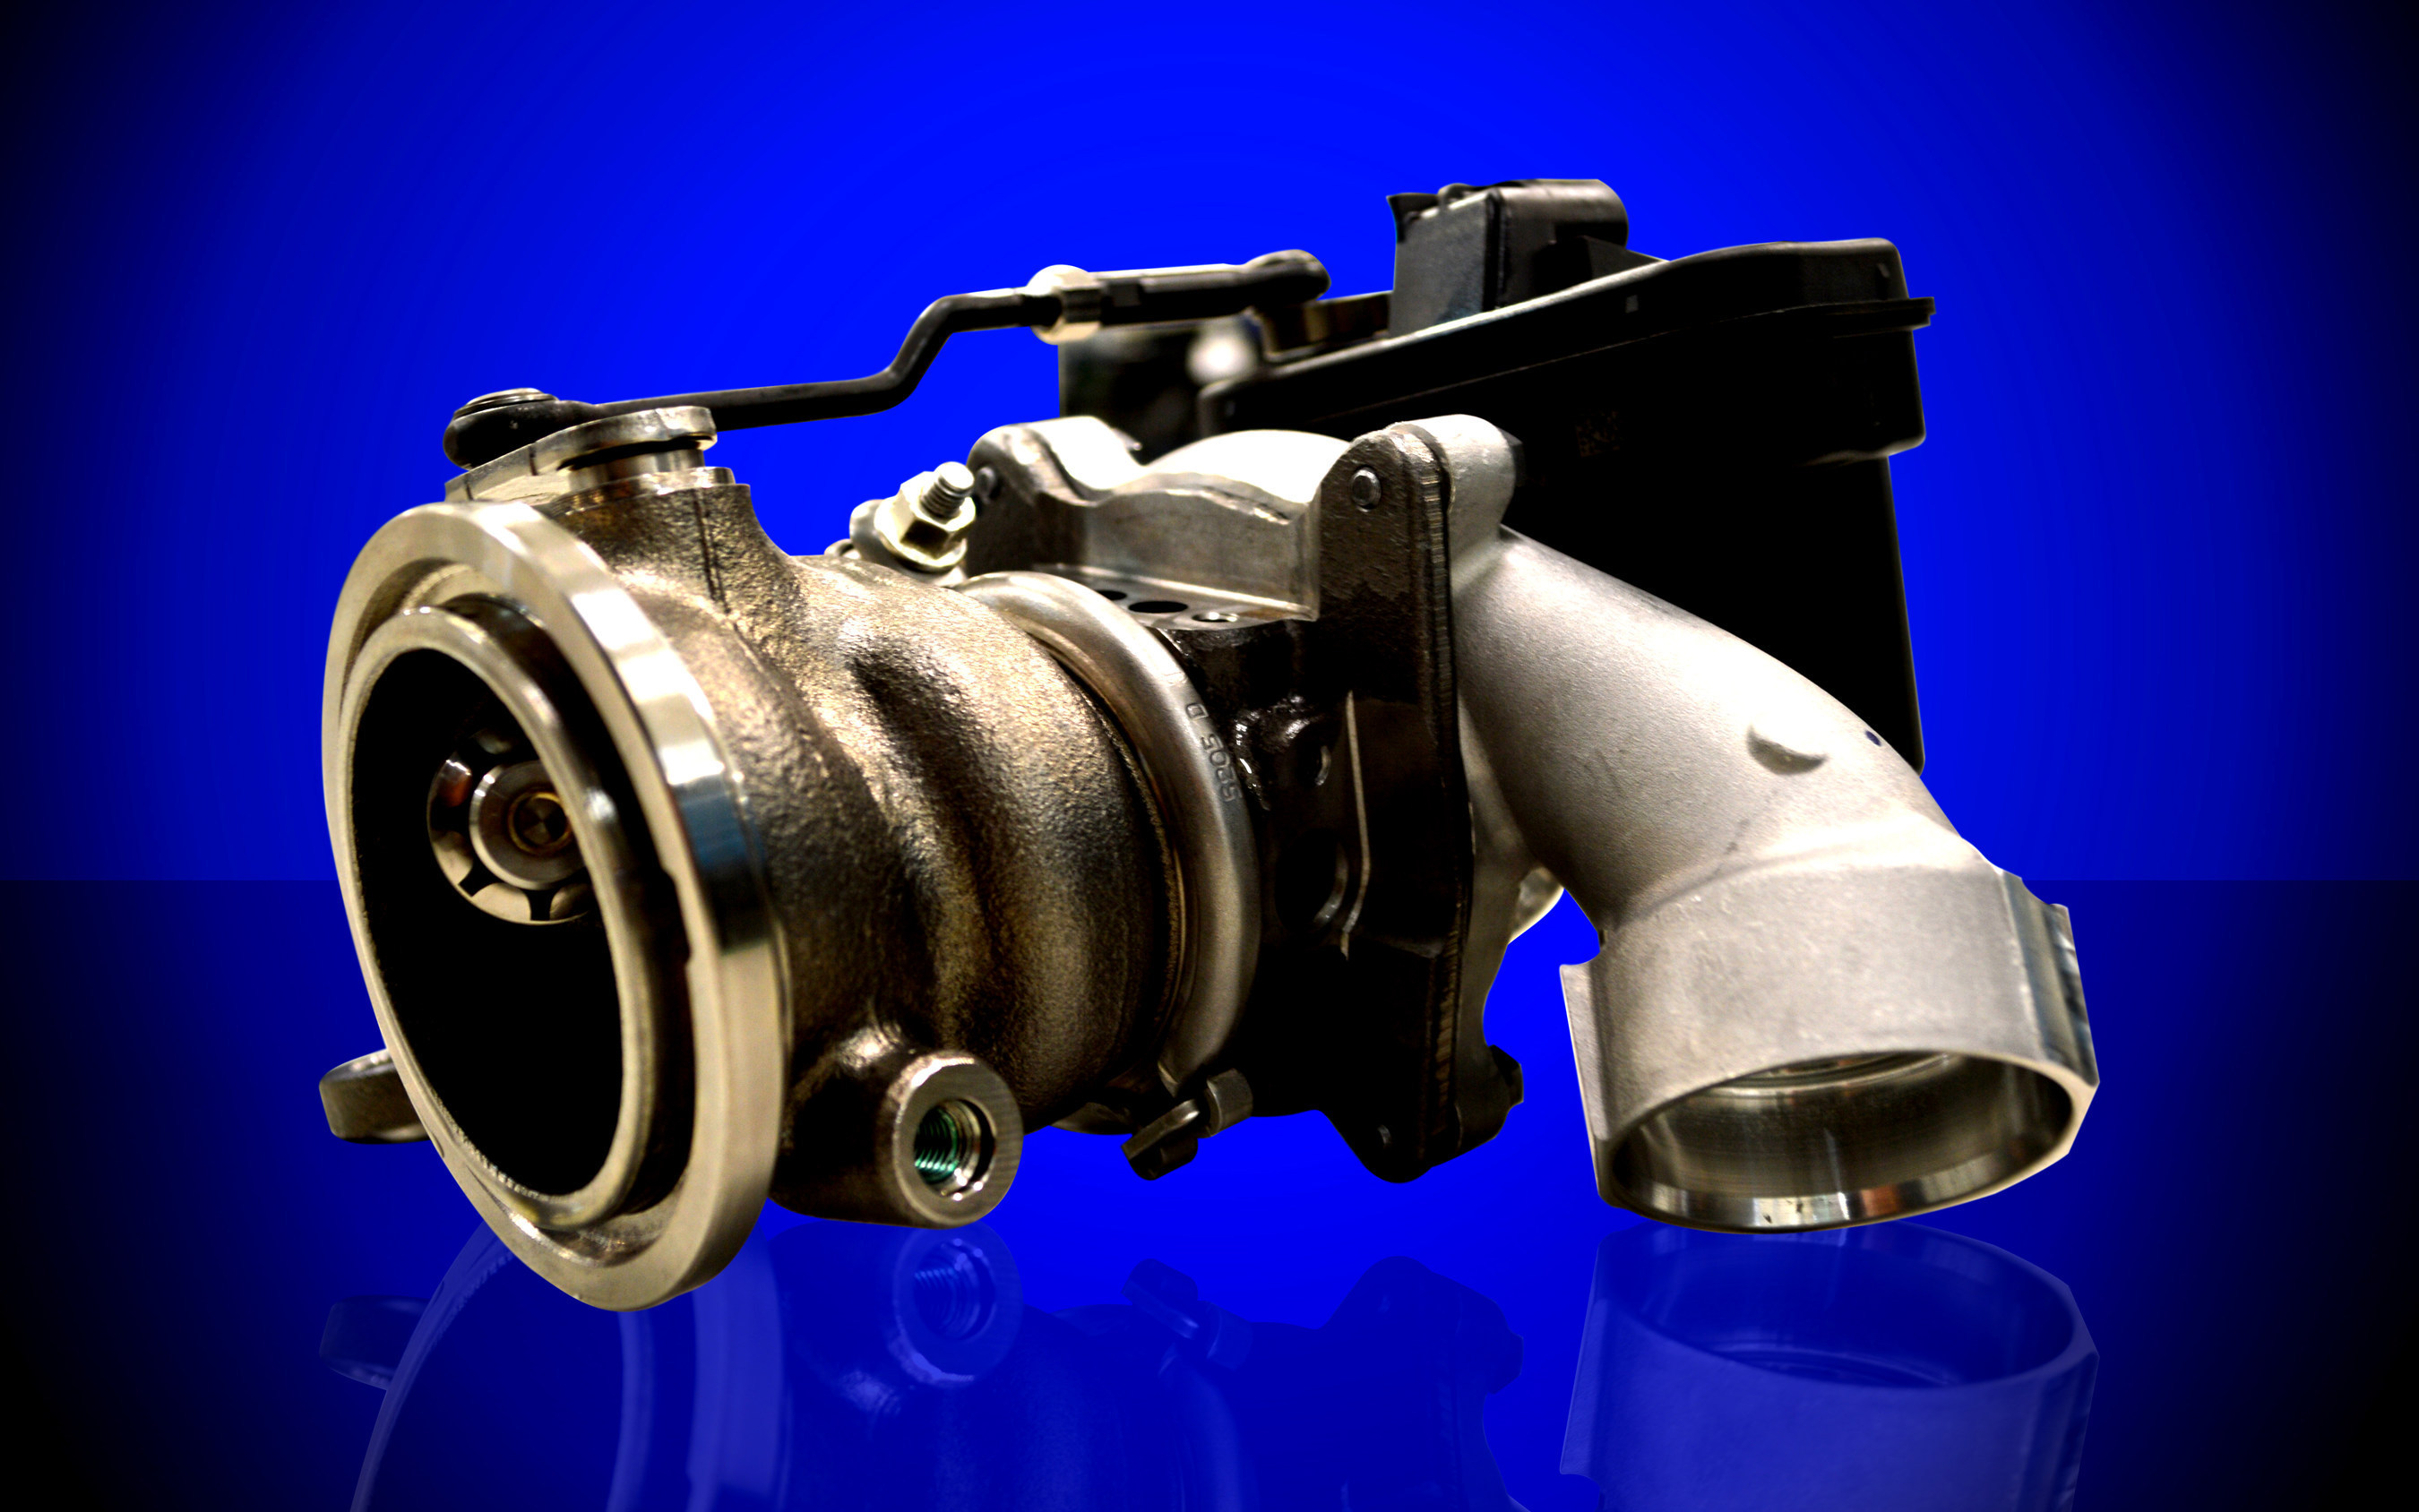 BorgWarner Inc Flex Fuel Turbocharger